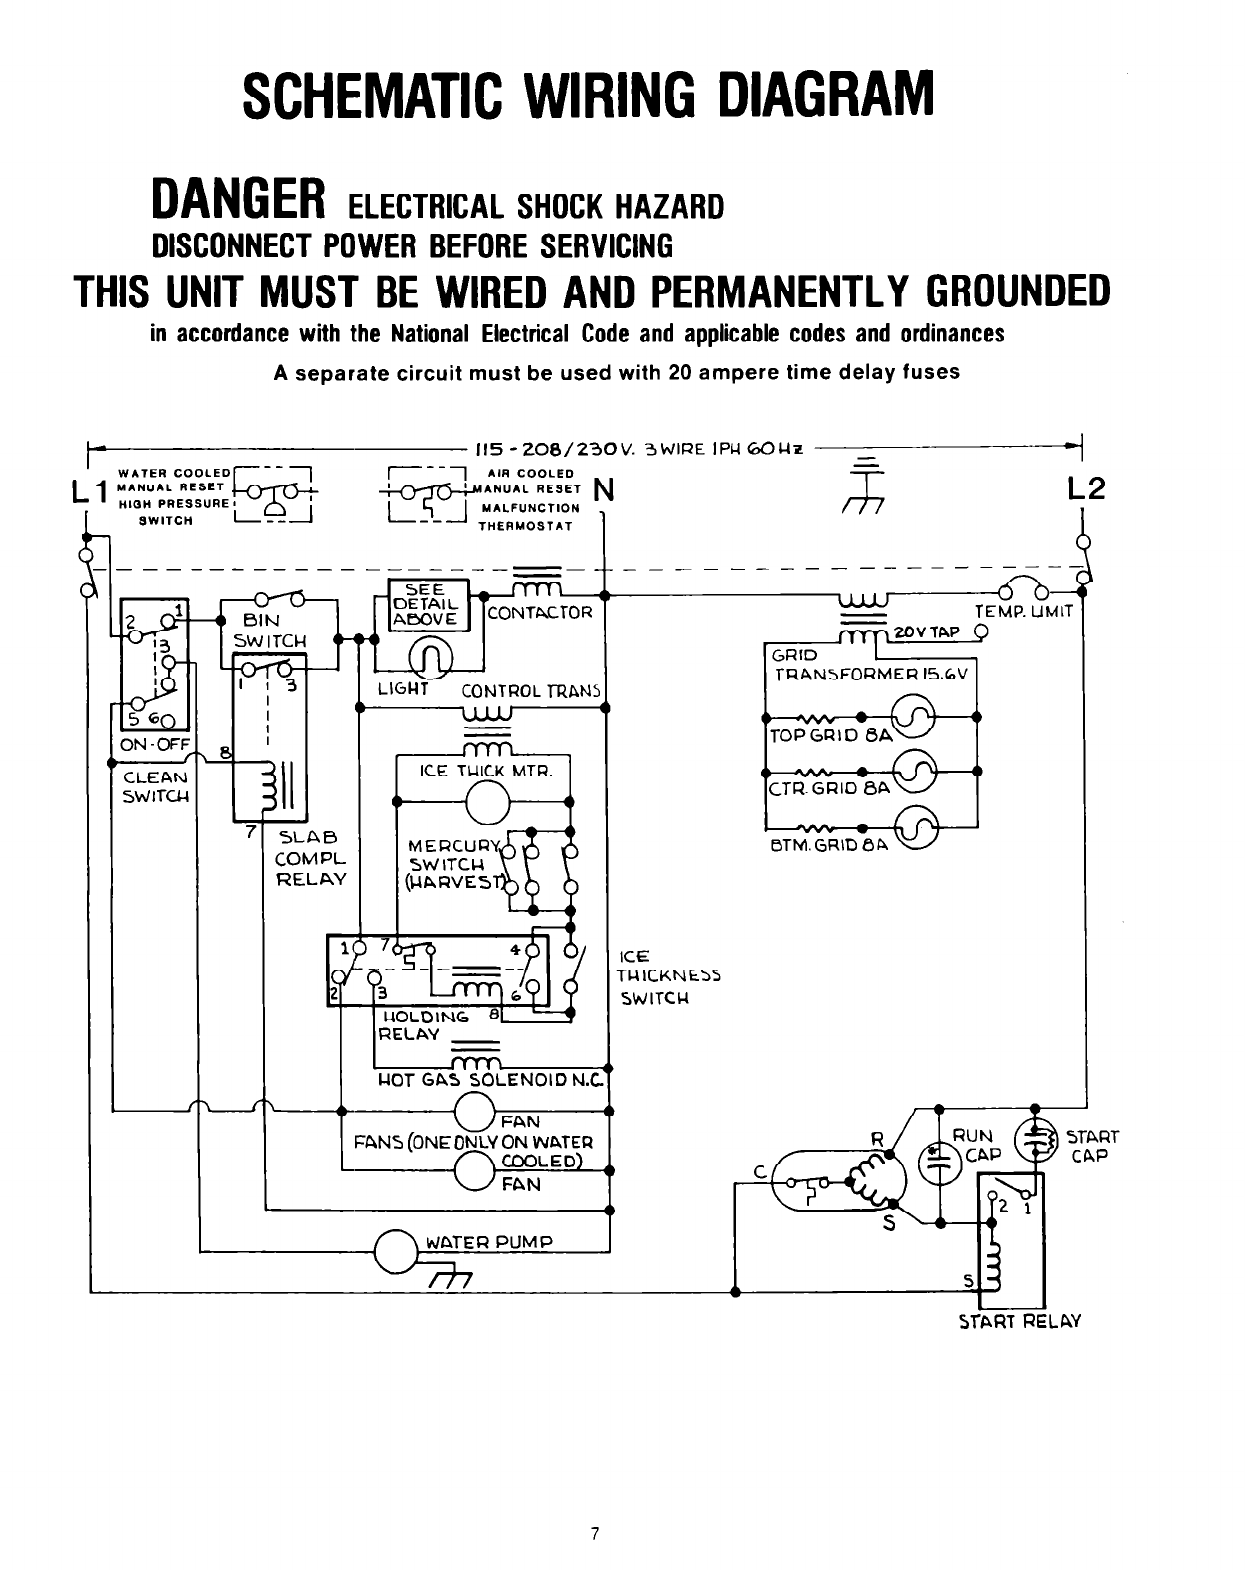 3616883c 28de 484d a98e f66647d6fb0d bg7?resize=840%2C1059 frigidaire refrigerator ice maker wiring diagram wiringdiagrams frigidaire refrigerator ice maker wiring diagram at pacquiaovsvargaslive.co